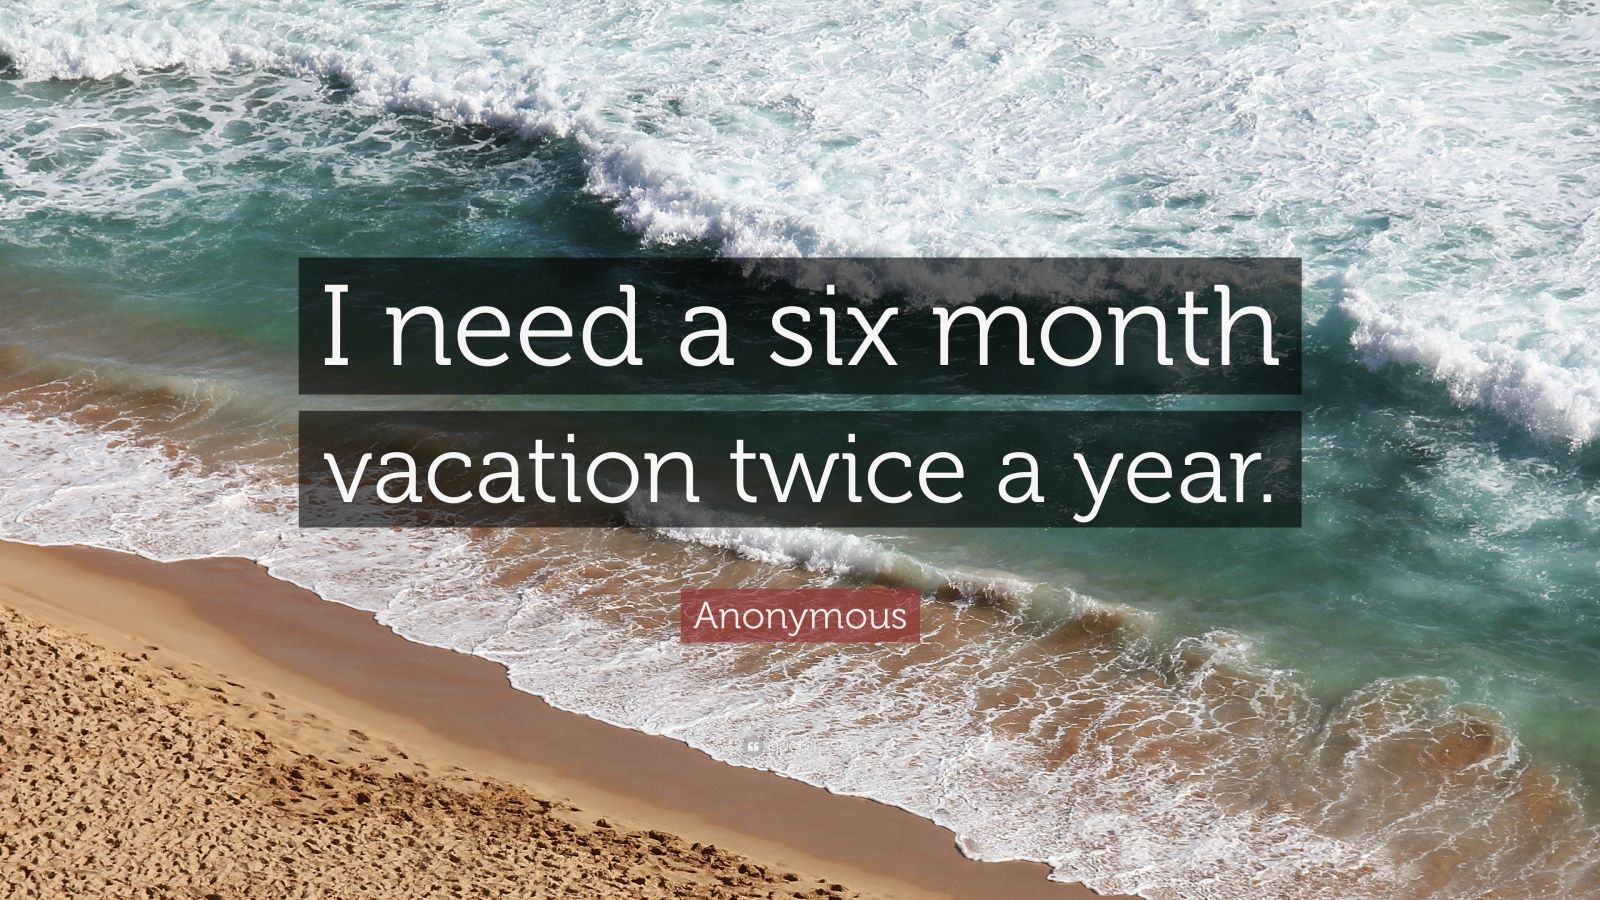 Funny Quotes I Need A Six Month Vacation Twice A Year Anonymous Funny Quotes Bill Gates Quotes Vacation